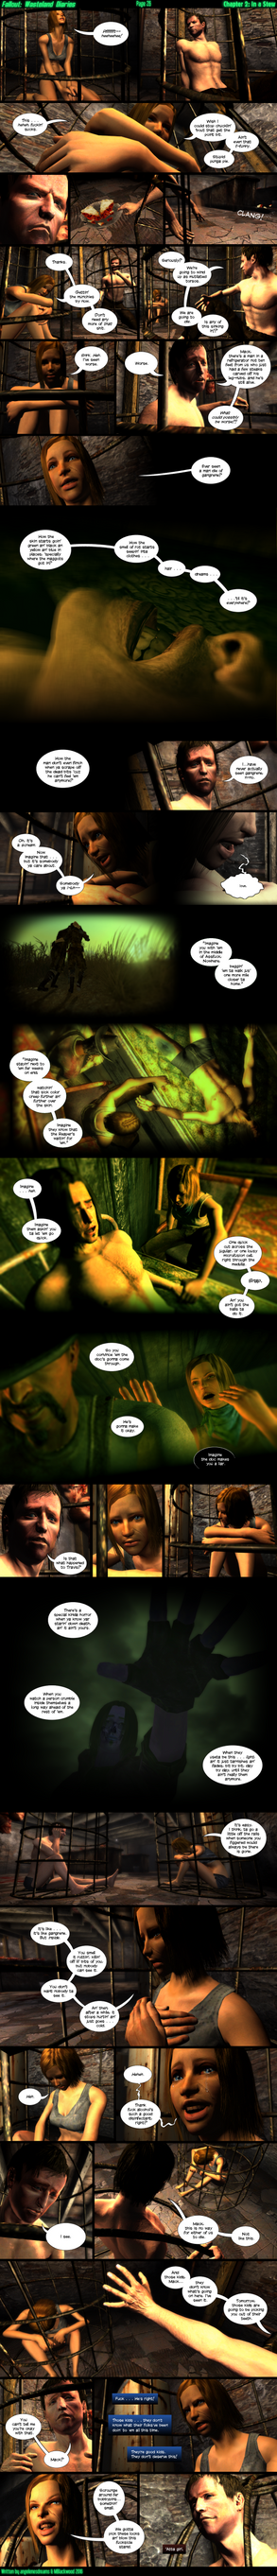 Wasteland Diaries - Page 26 by angelenesdreams